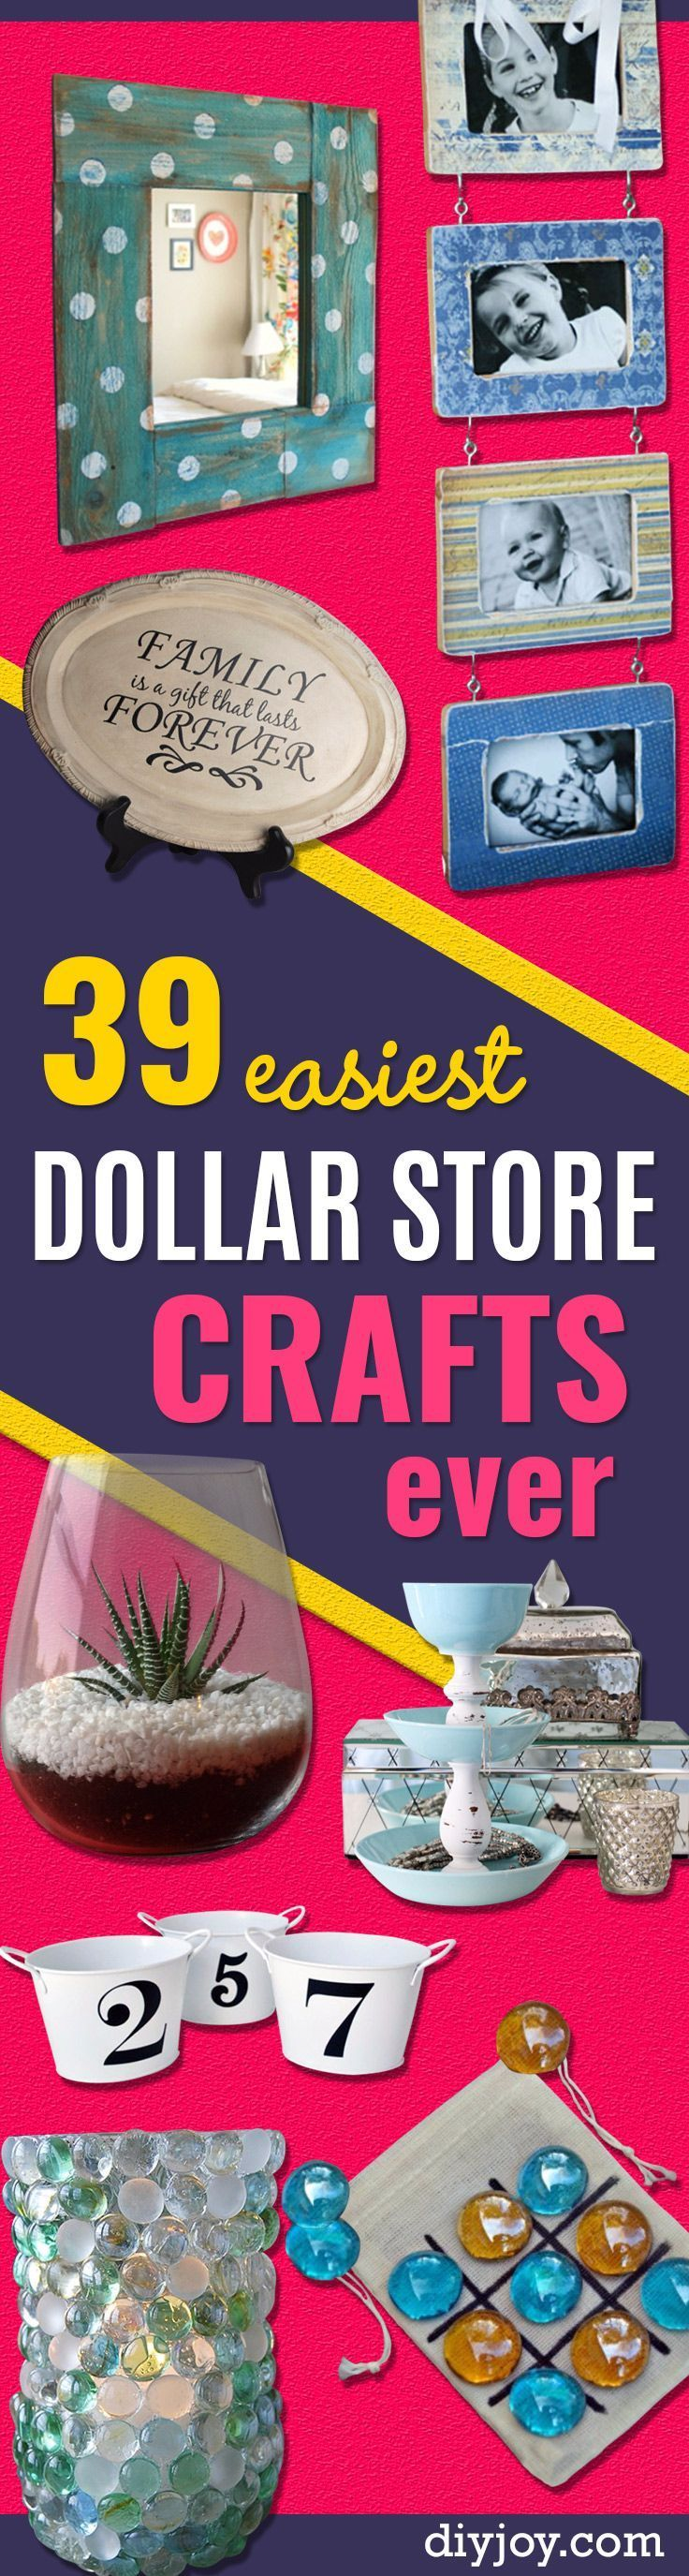 Earn Money From Home 39 Easiest Dollar Store Crafts Ever - Quick And Cheap Crafts To Make, Dollar Store Craft Ideas To Make And Sell, Cute Dollar Store Do It Yourself Projects, Cheap Craft Ideas, Dollar Sore Decor, Creative Dollar Store Crafts diyjoy.com/... You may have signed up to take paid surveys in the past and didn't make any money because you didn't know the correct way to get started!